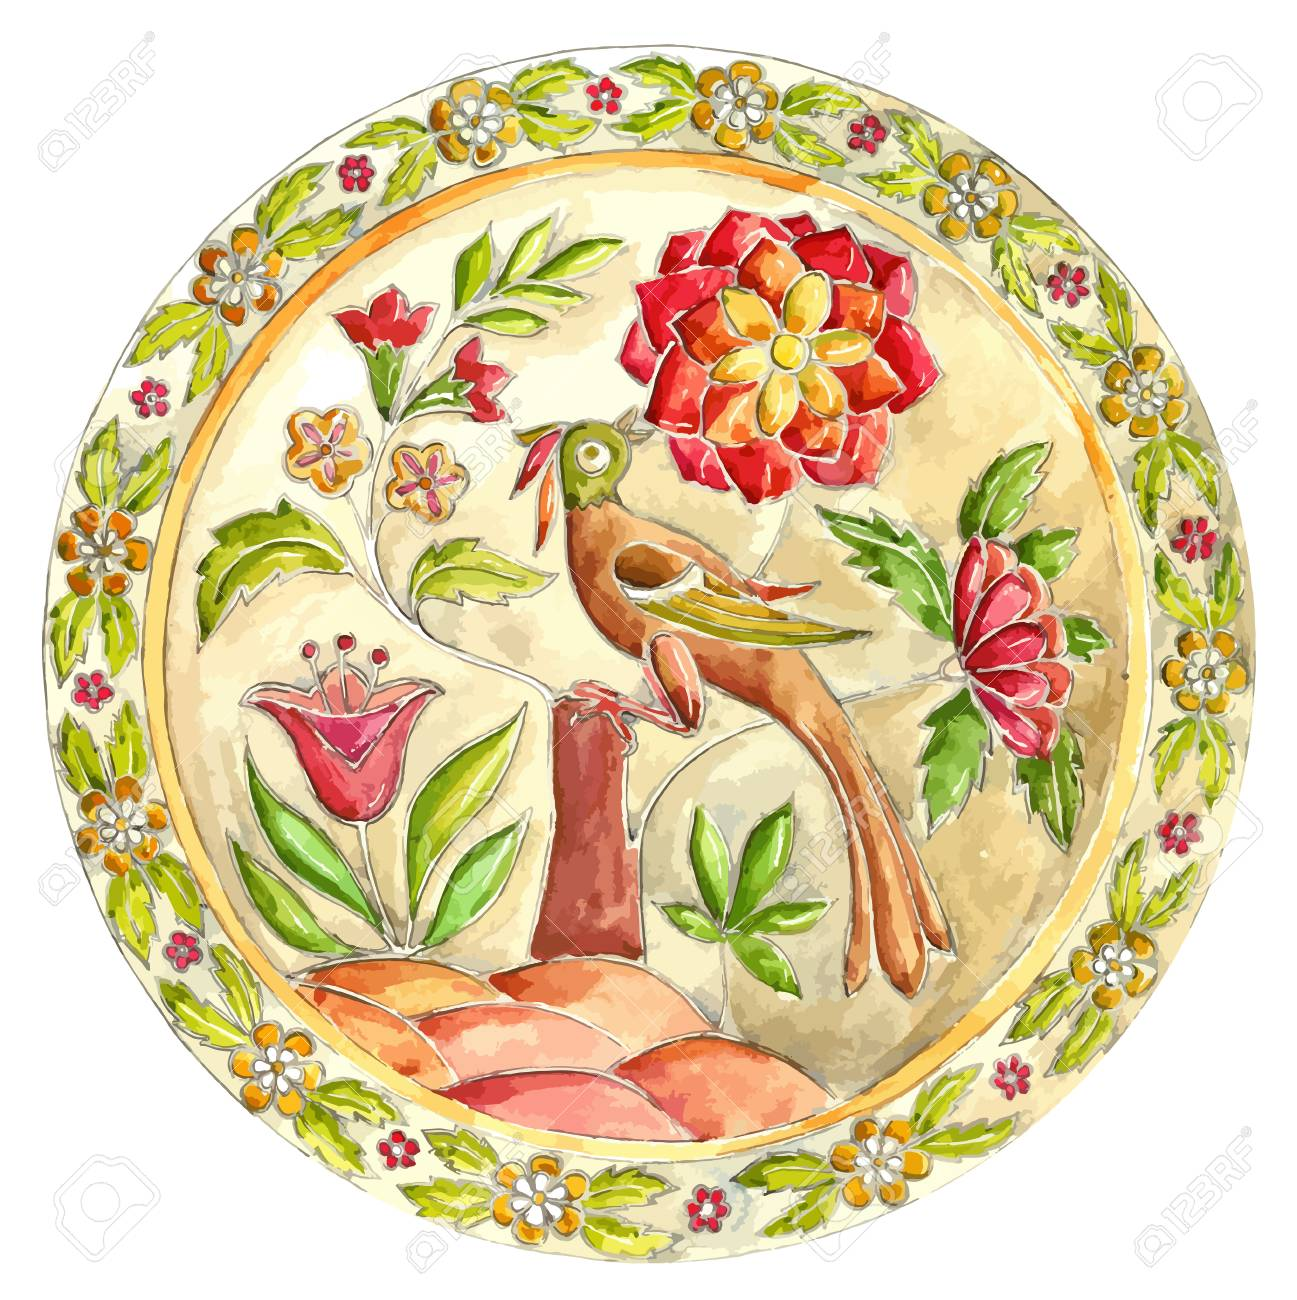 Fabulous Bird. Decorative Plate In Gzhel Style. Russian Painted ...